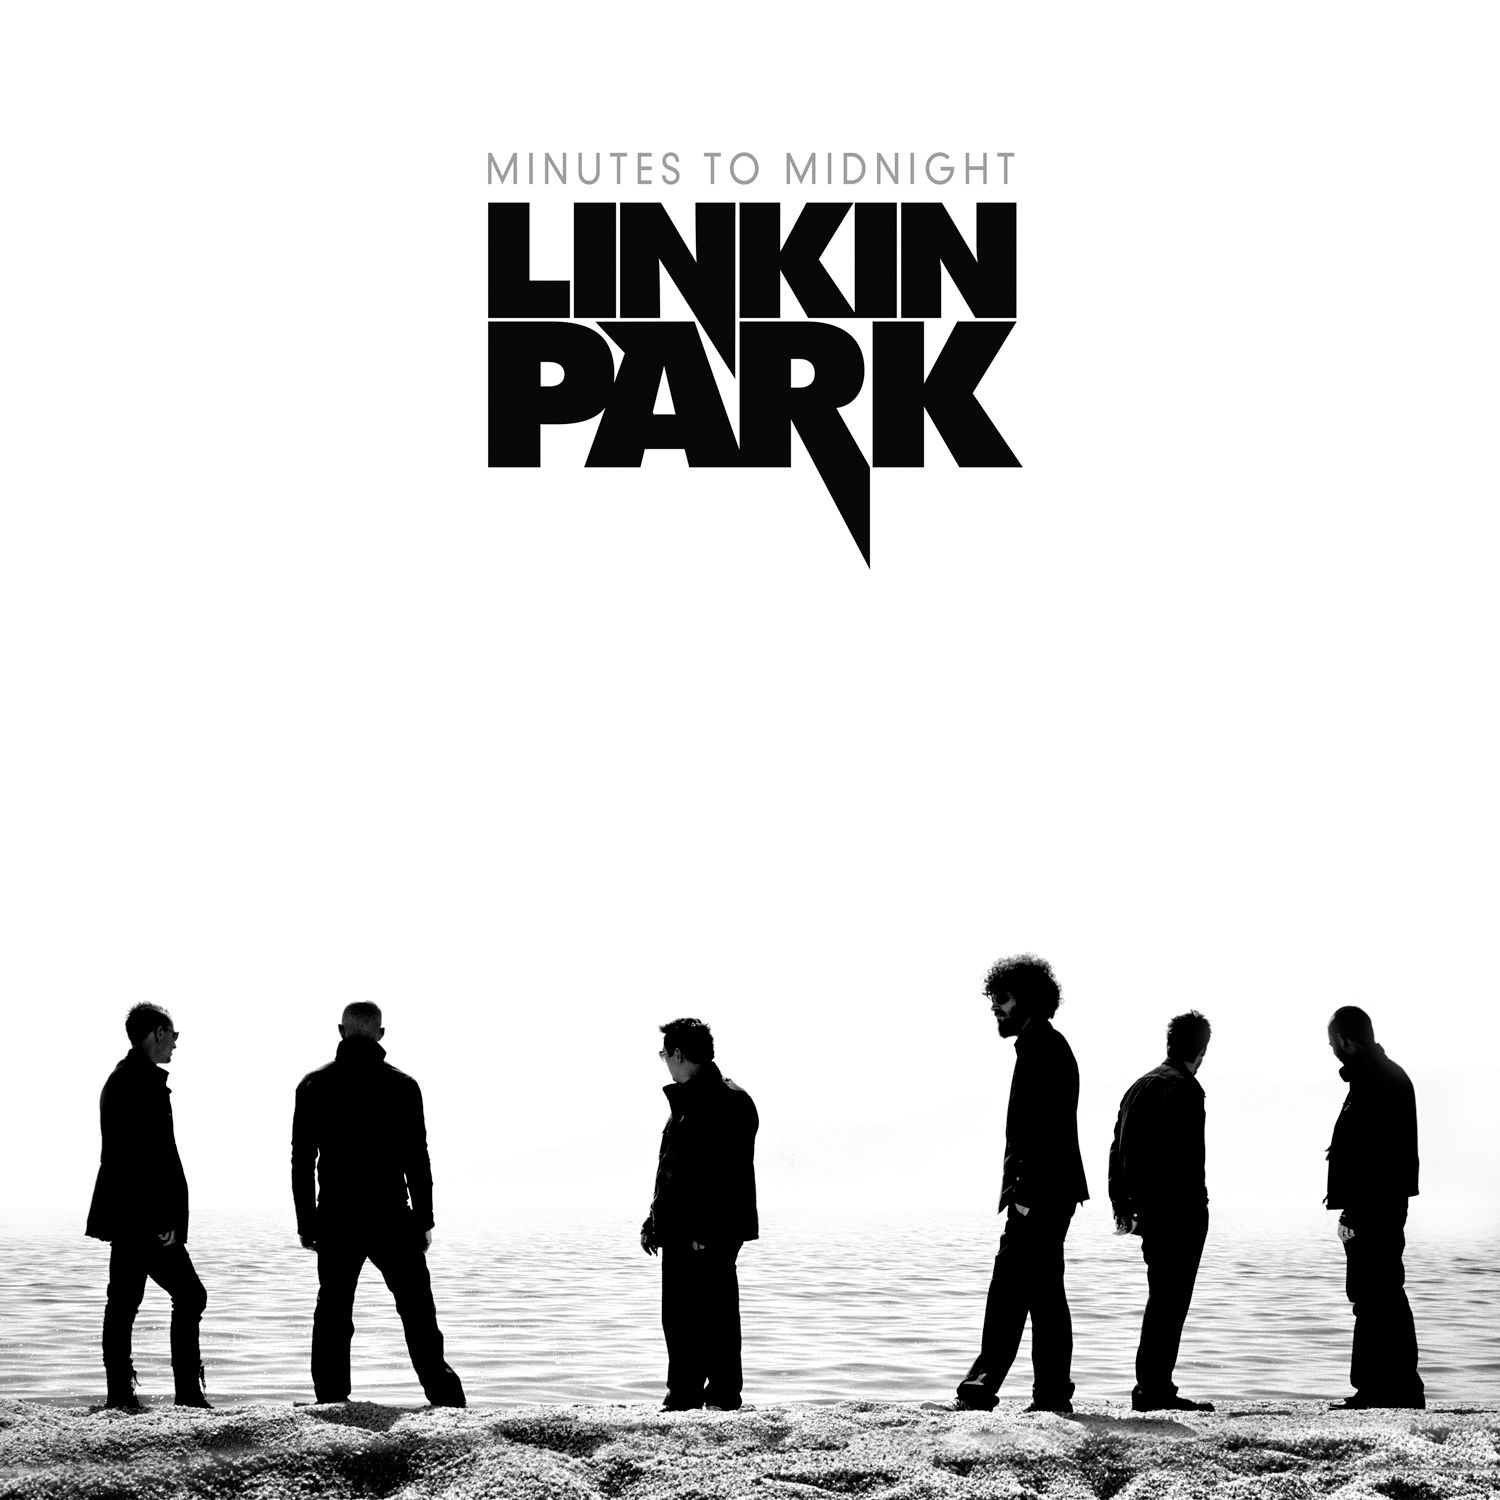 Linkin Park - Minutes To Midnight album cover